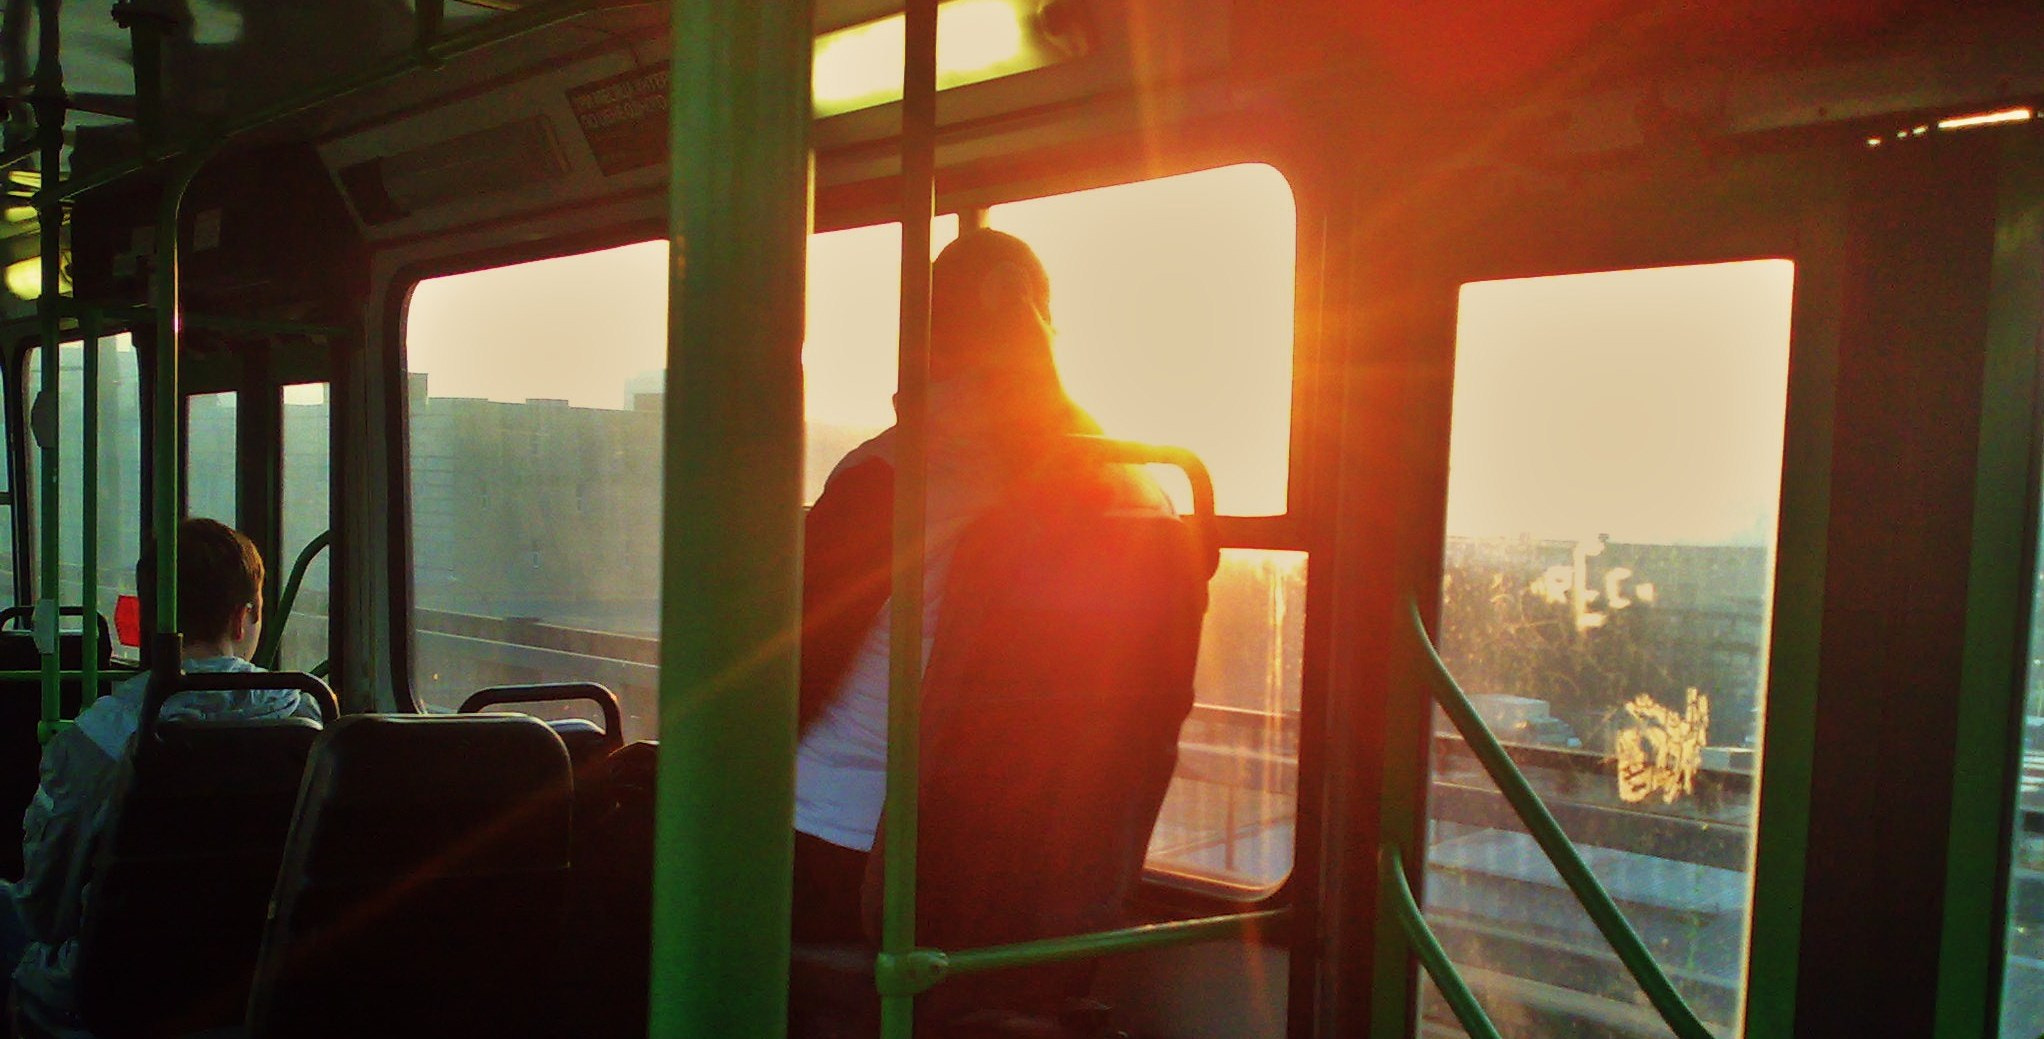 Photograph sunrise in the bus by Михаил Орлов on 500px